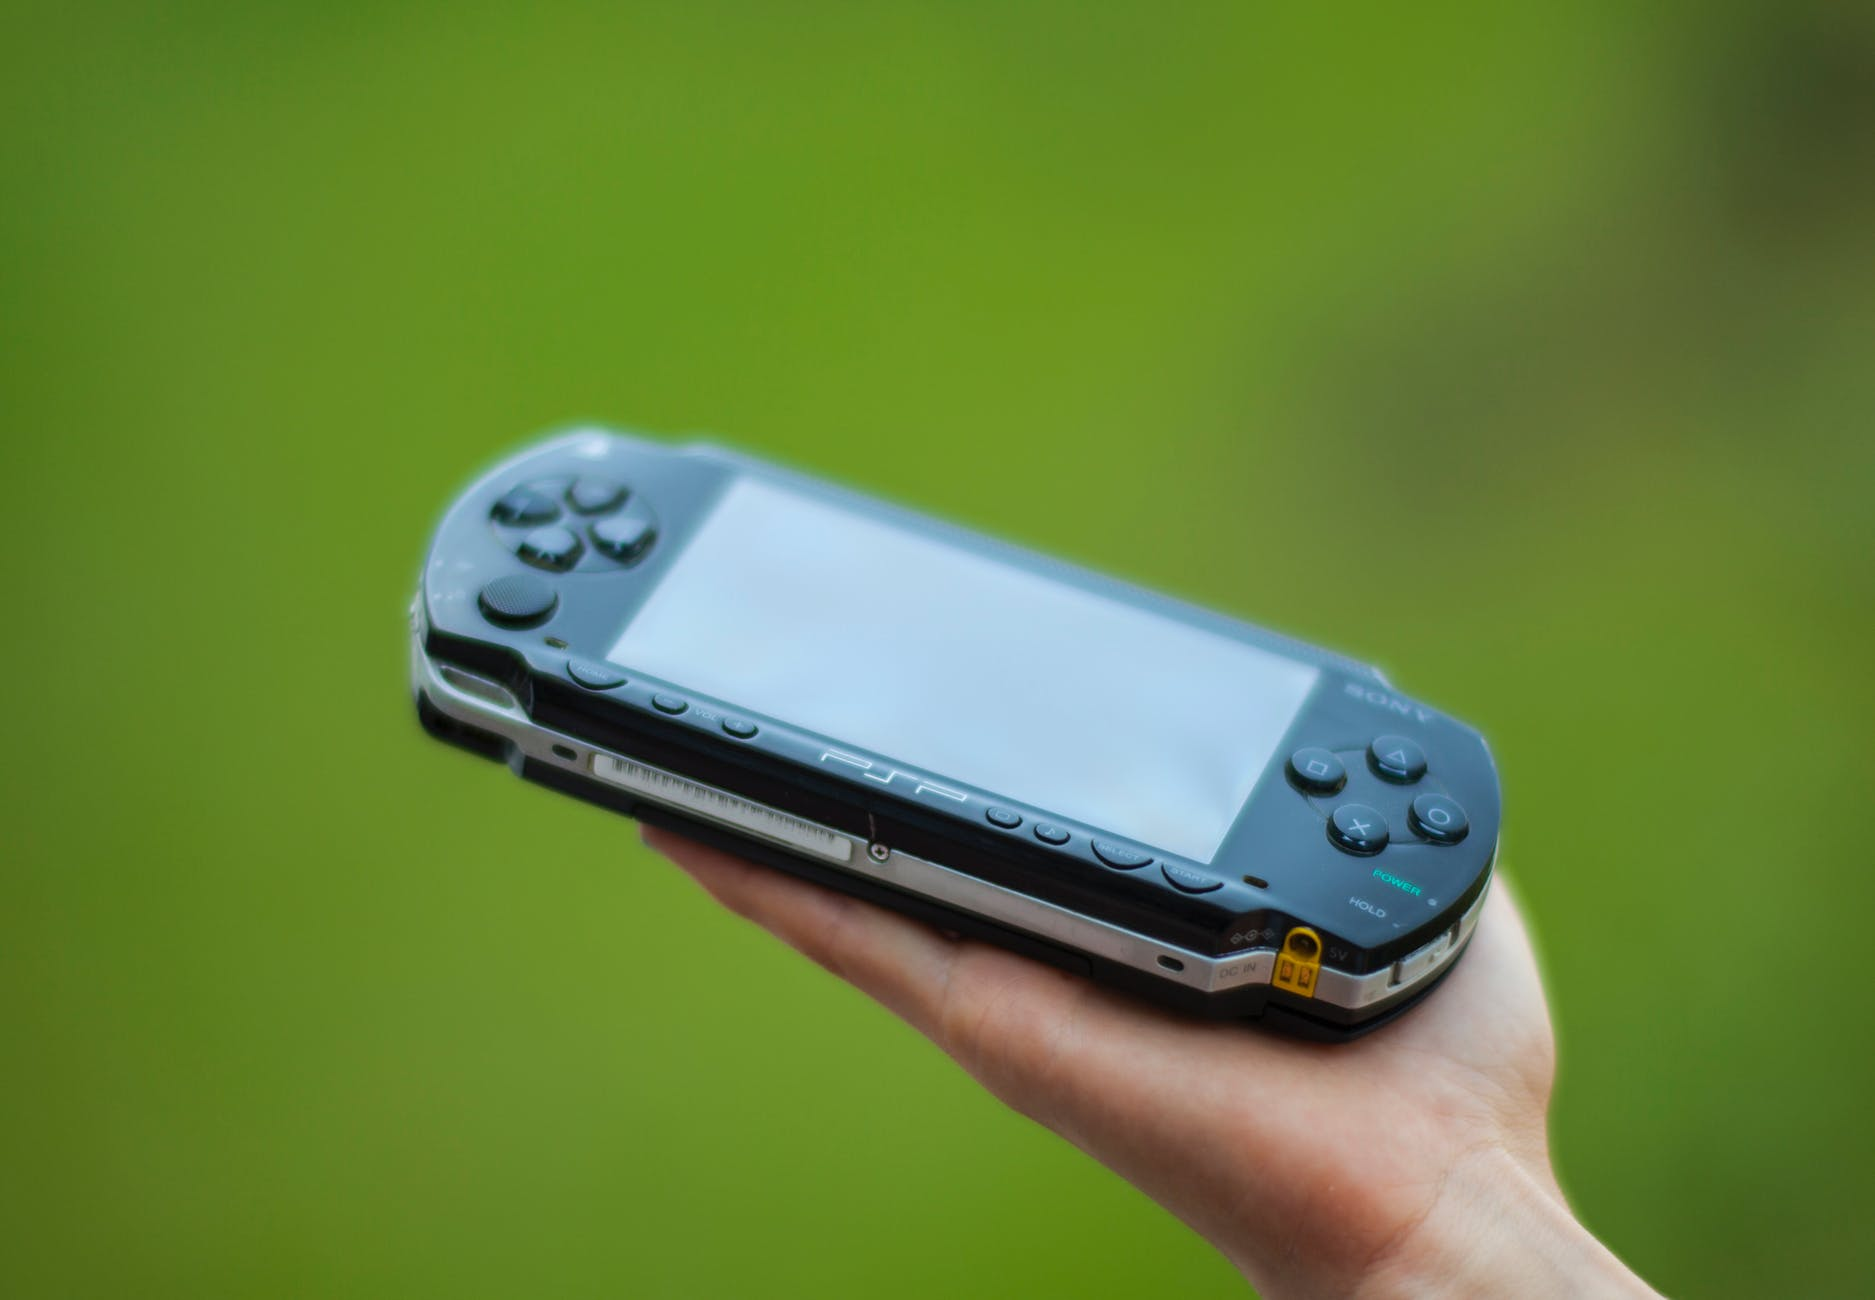 closeup photography of person holding black sony psp handheld console